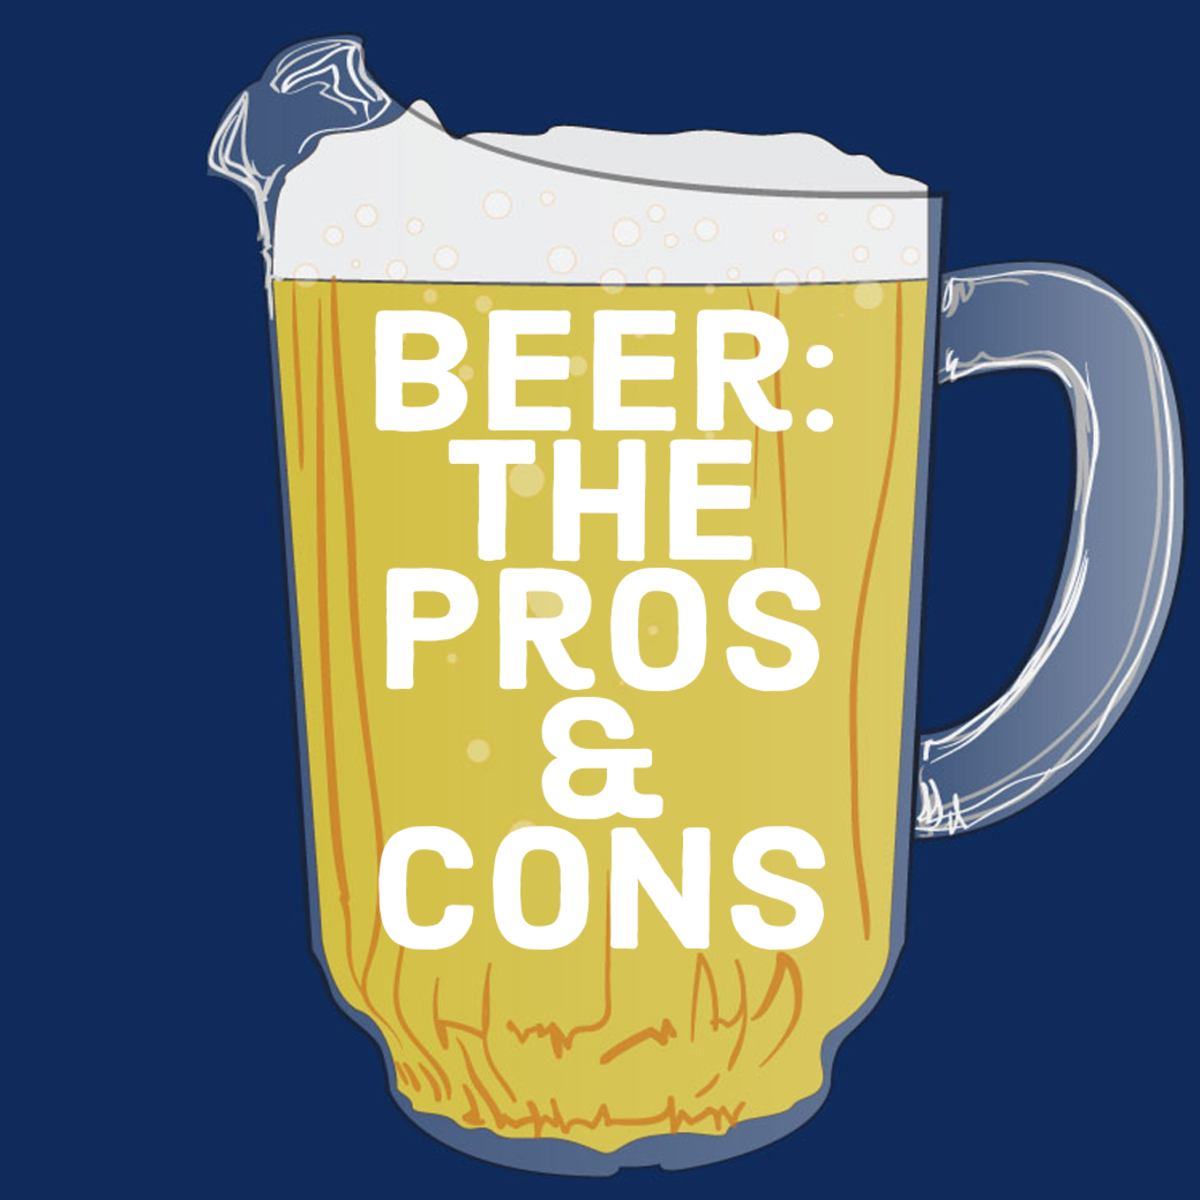 Beer: 5 Benefits And 5 Disadvantages